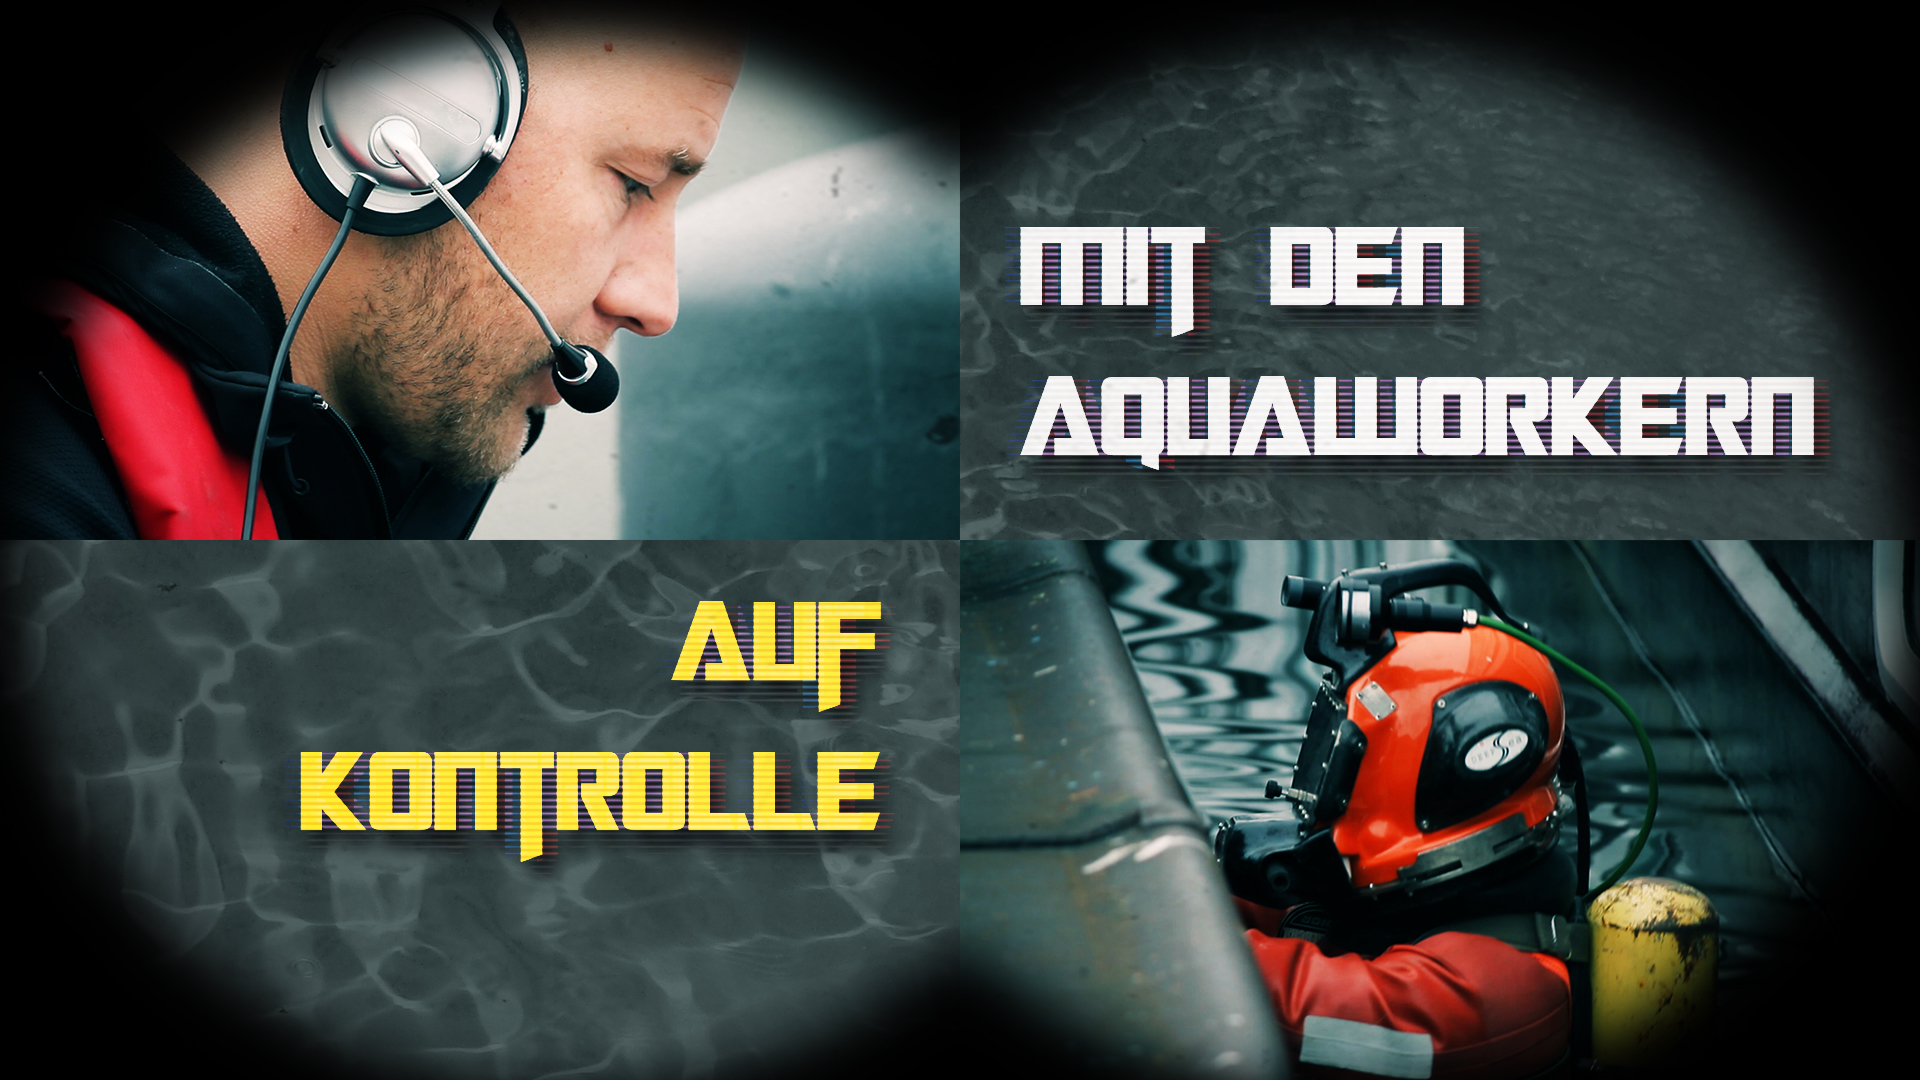 AQUAWORKER_AufKontrolle_03-1